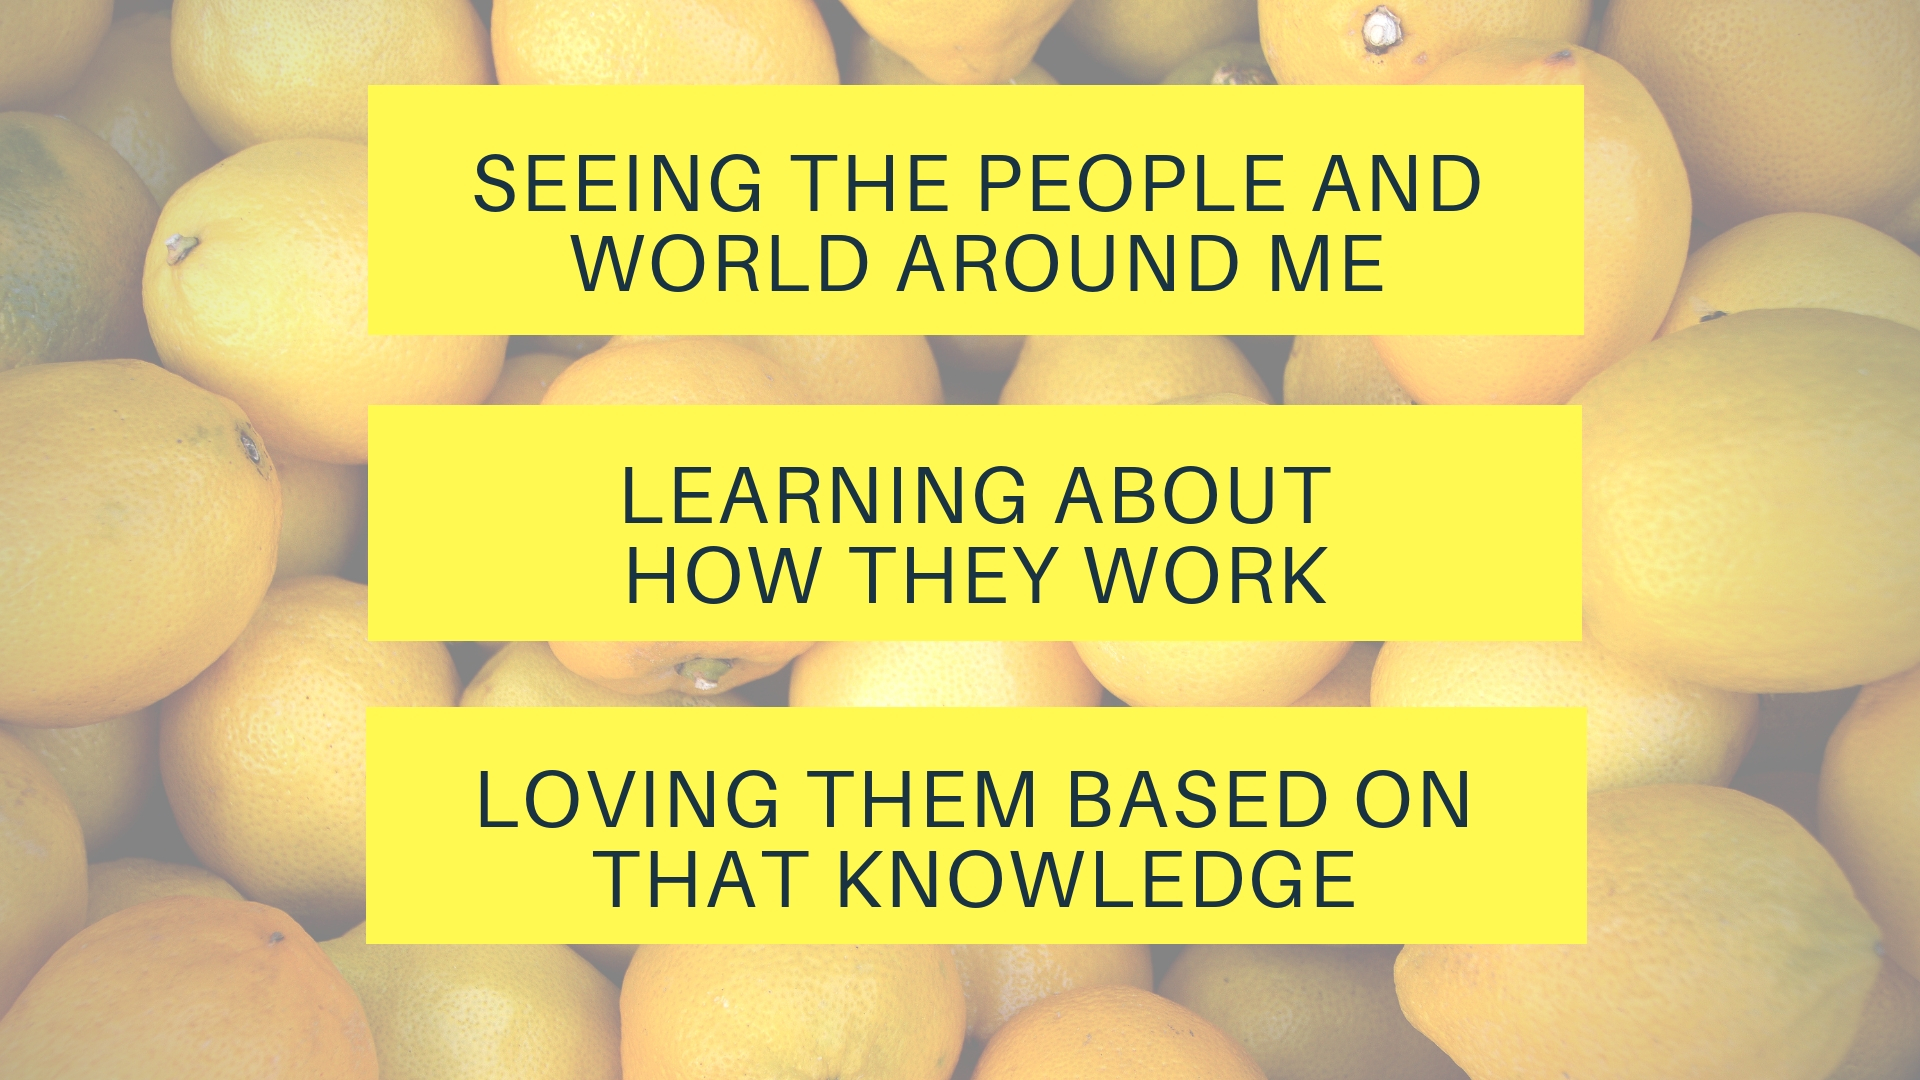 Seeing the people and world around me,Loving them based on that knowledge. (2)